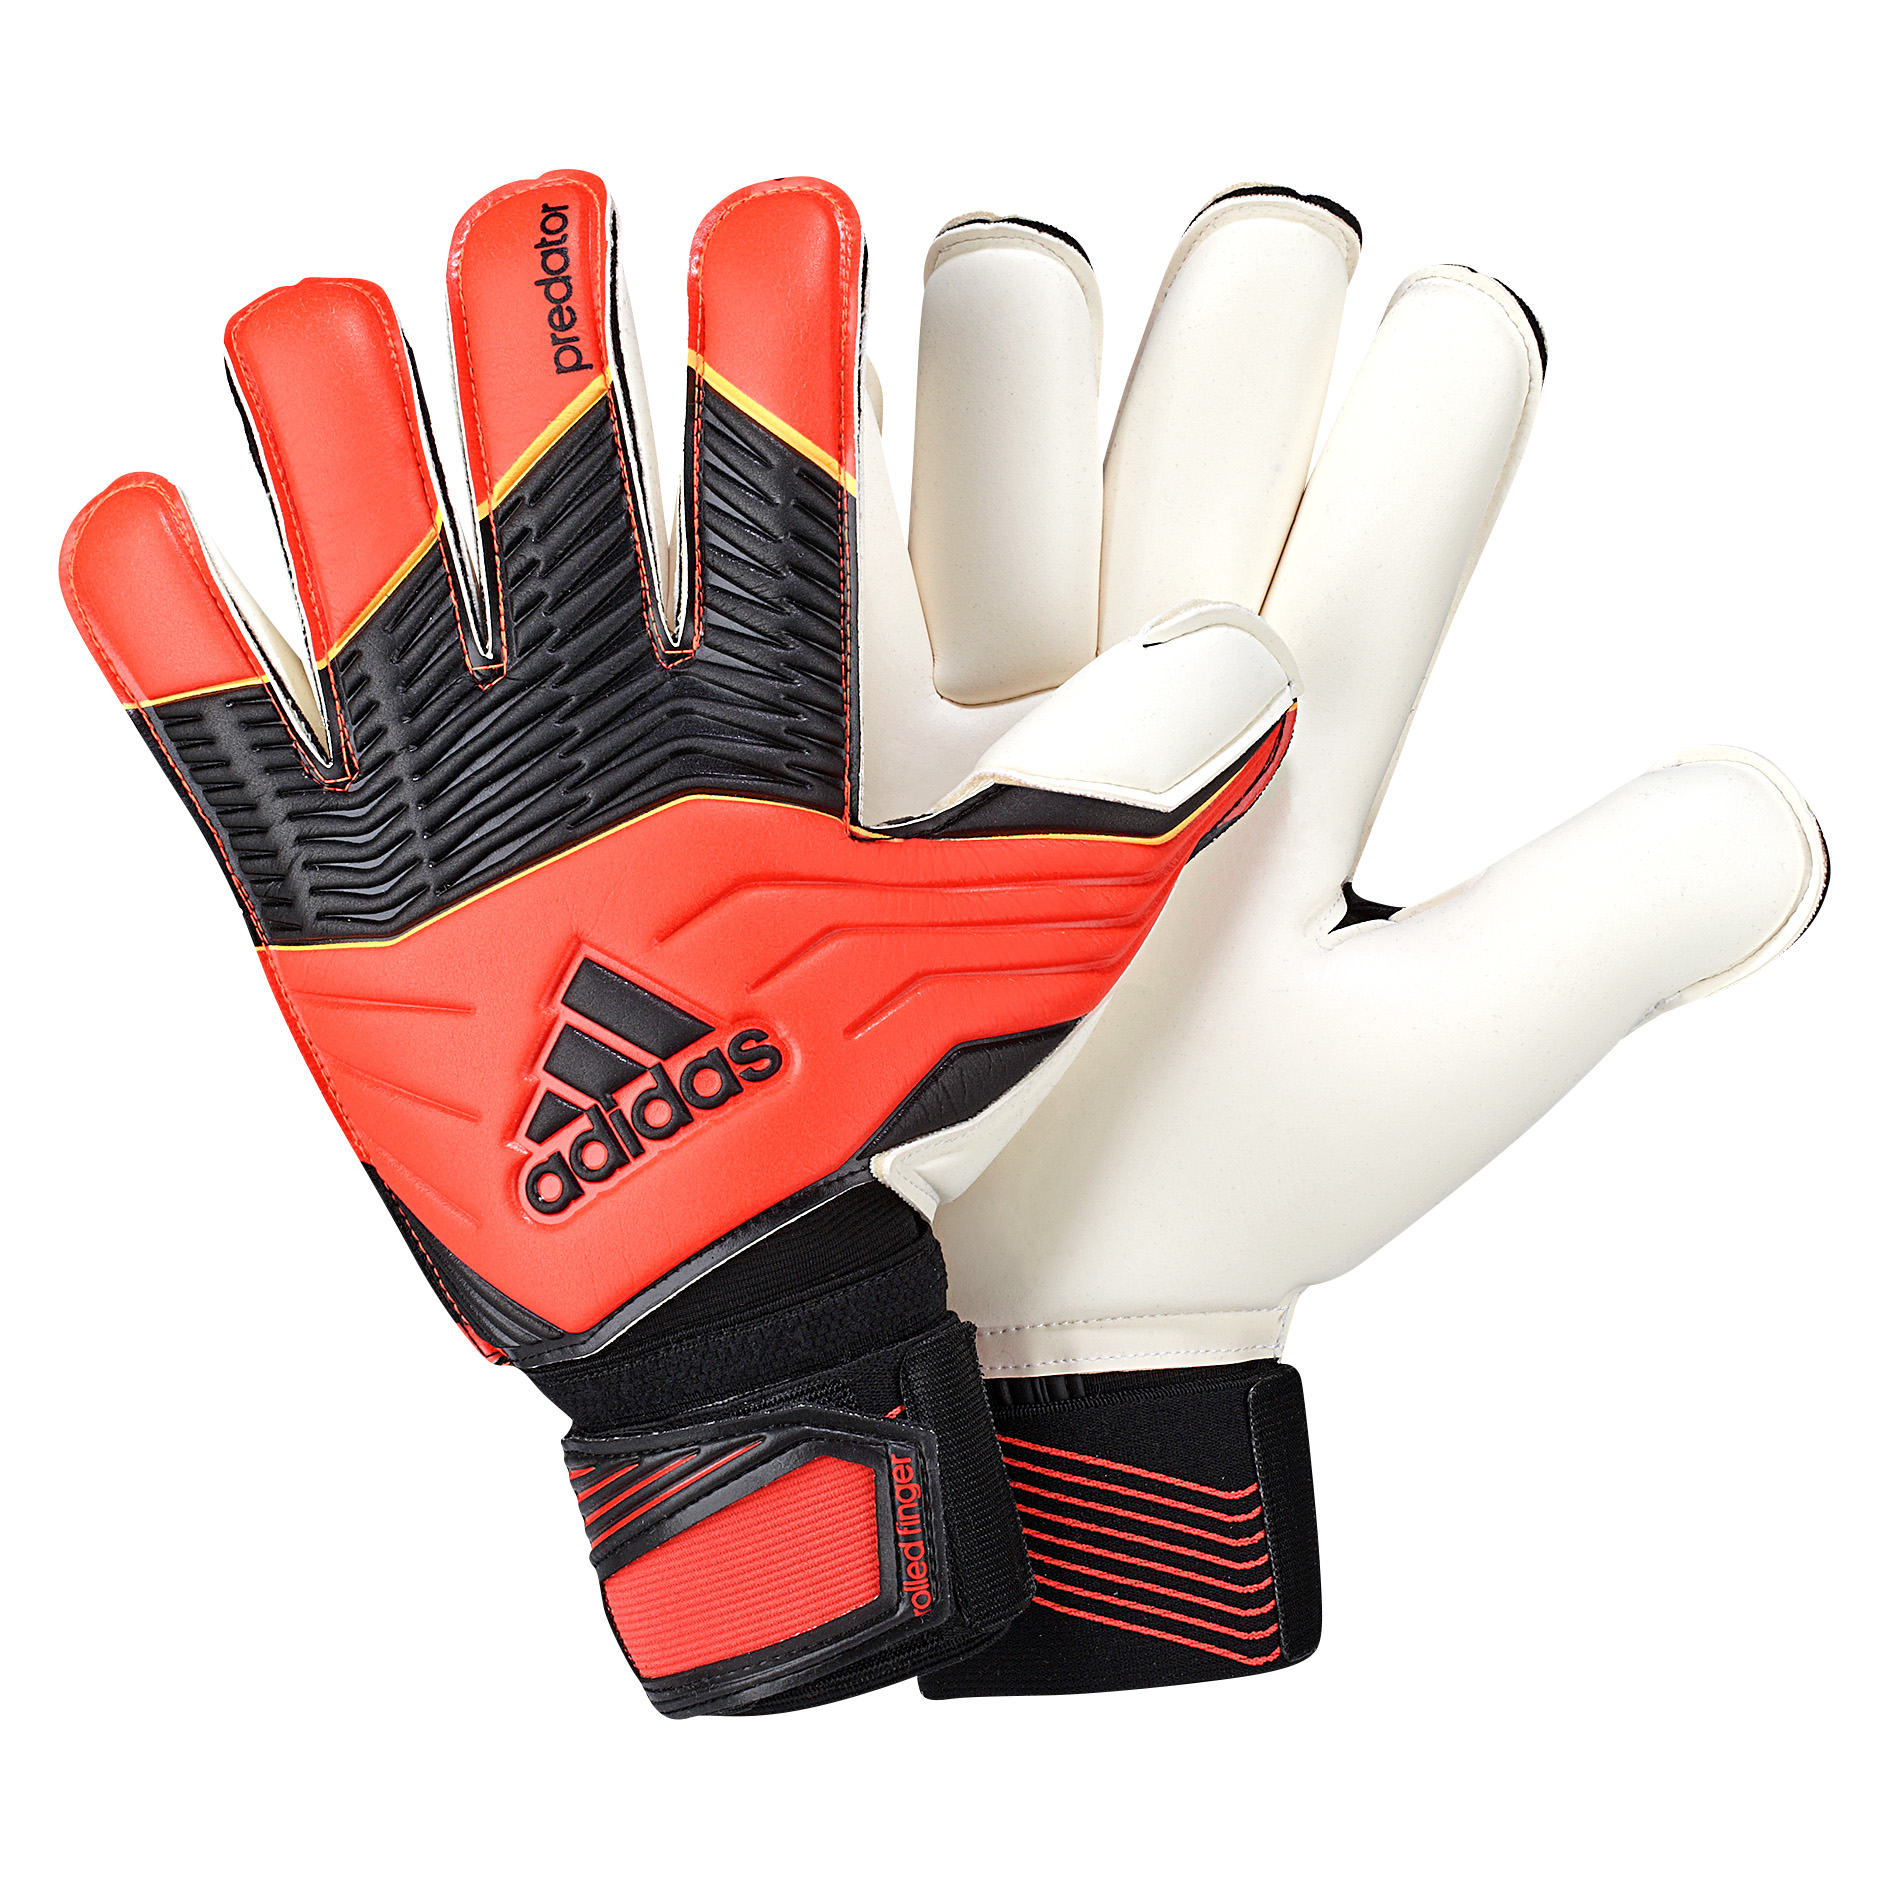 Adidas Predator Roll Finger Goalkeeper Glove Orange